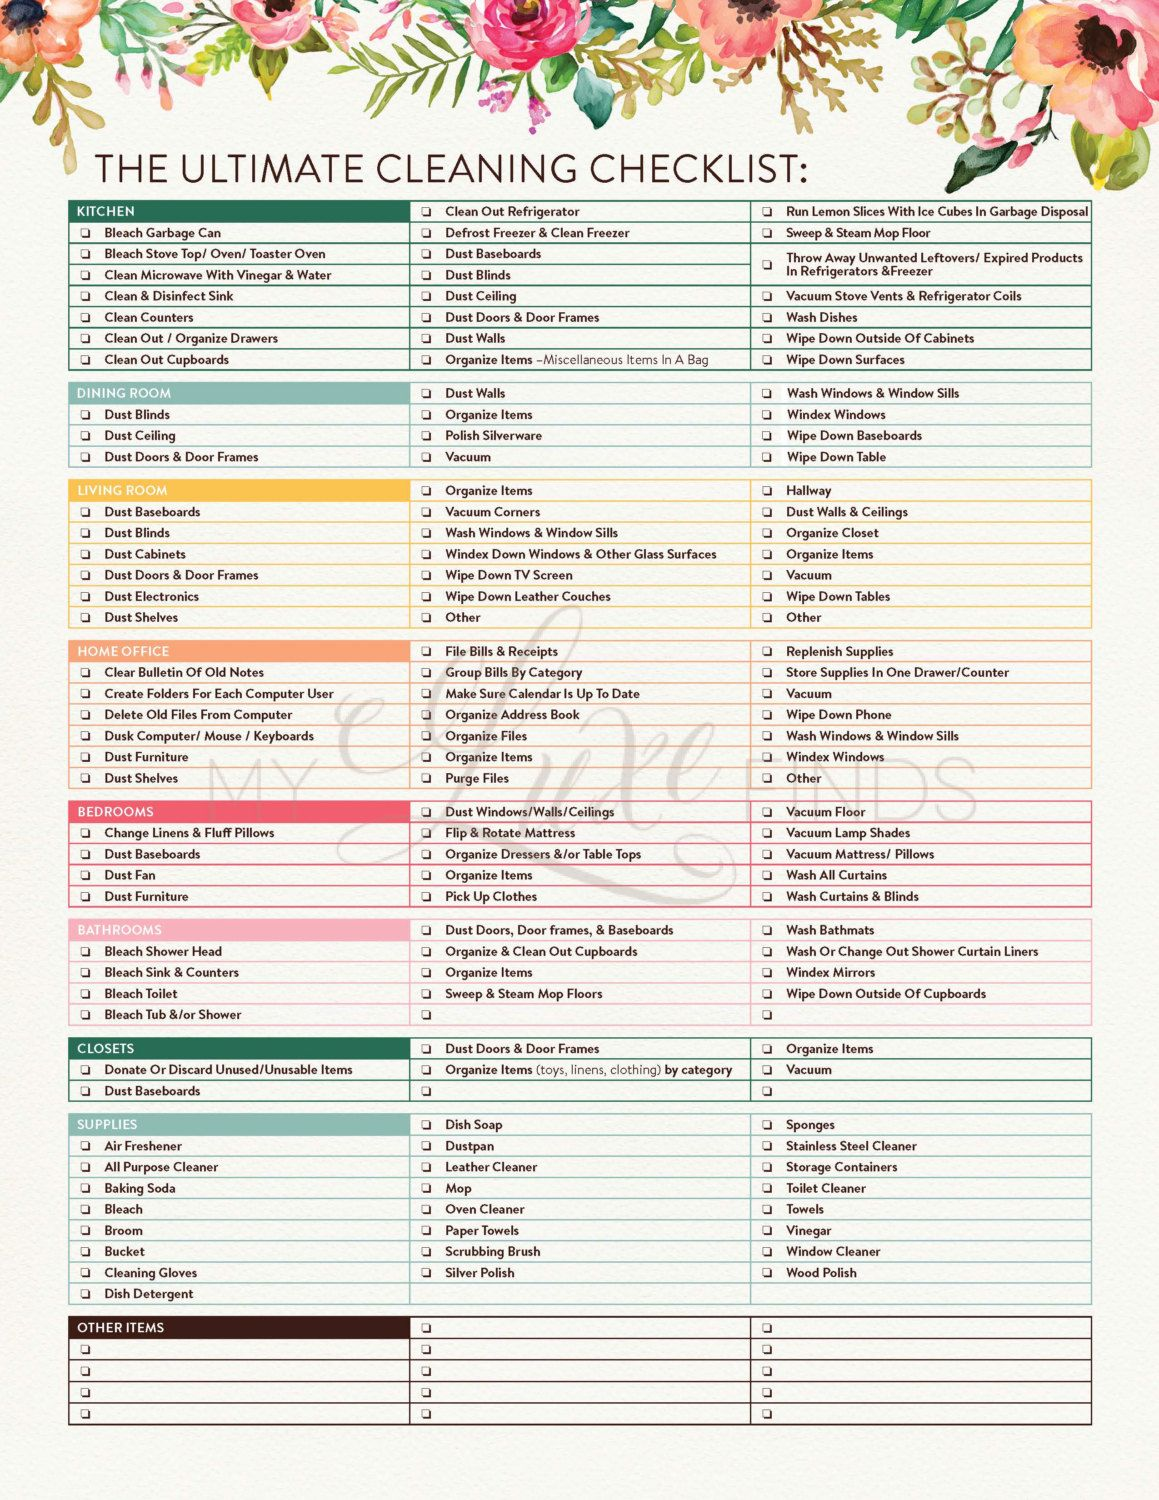 the ultimate house cleaning checklist printable pdf helpful hints